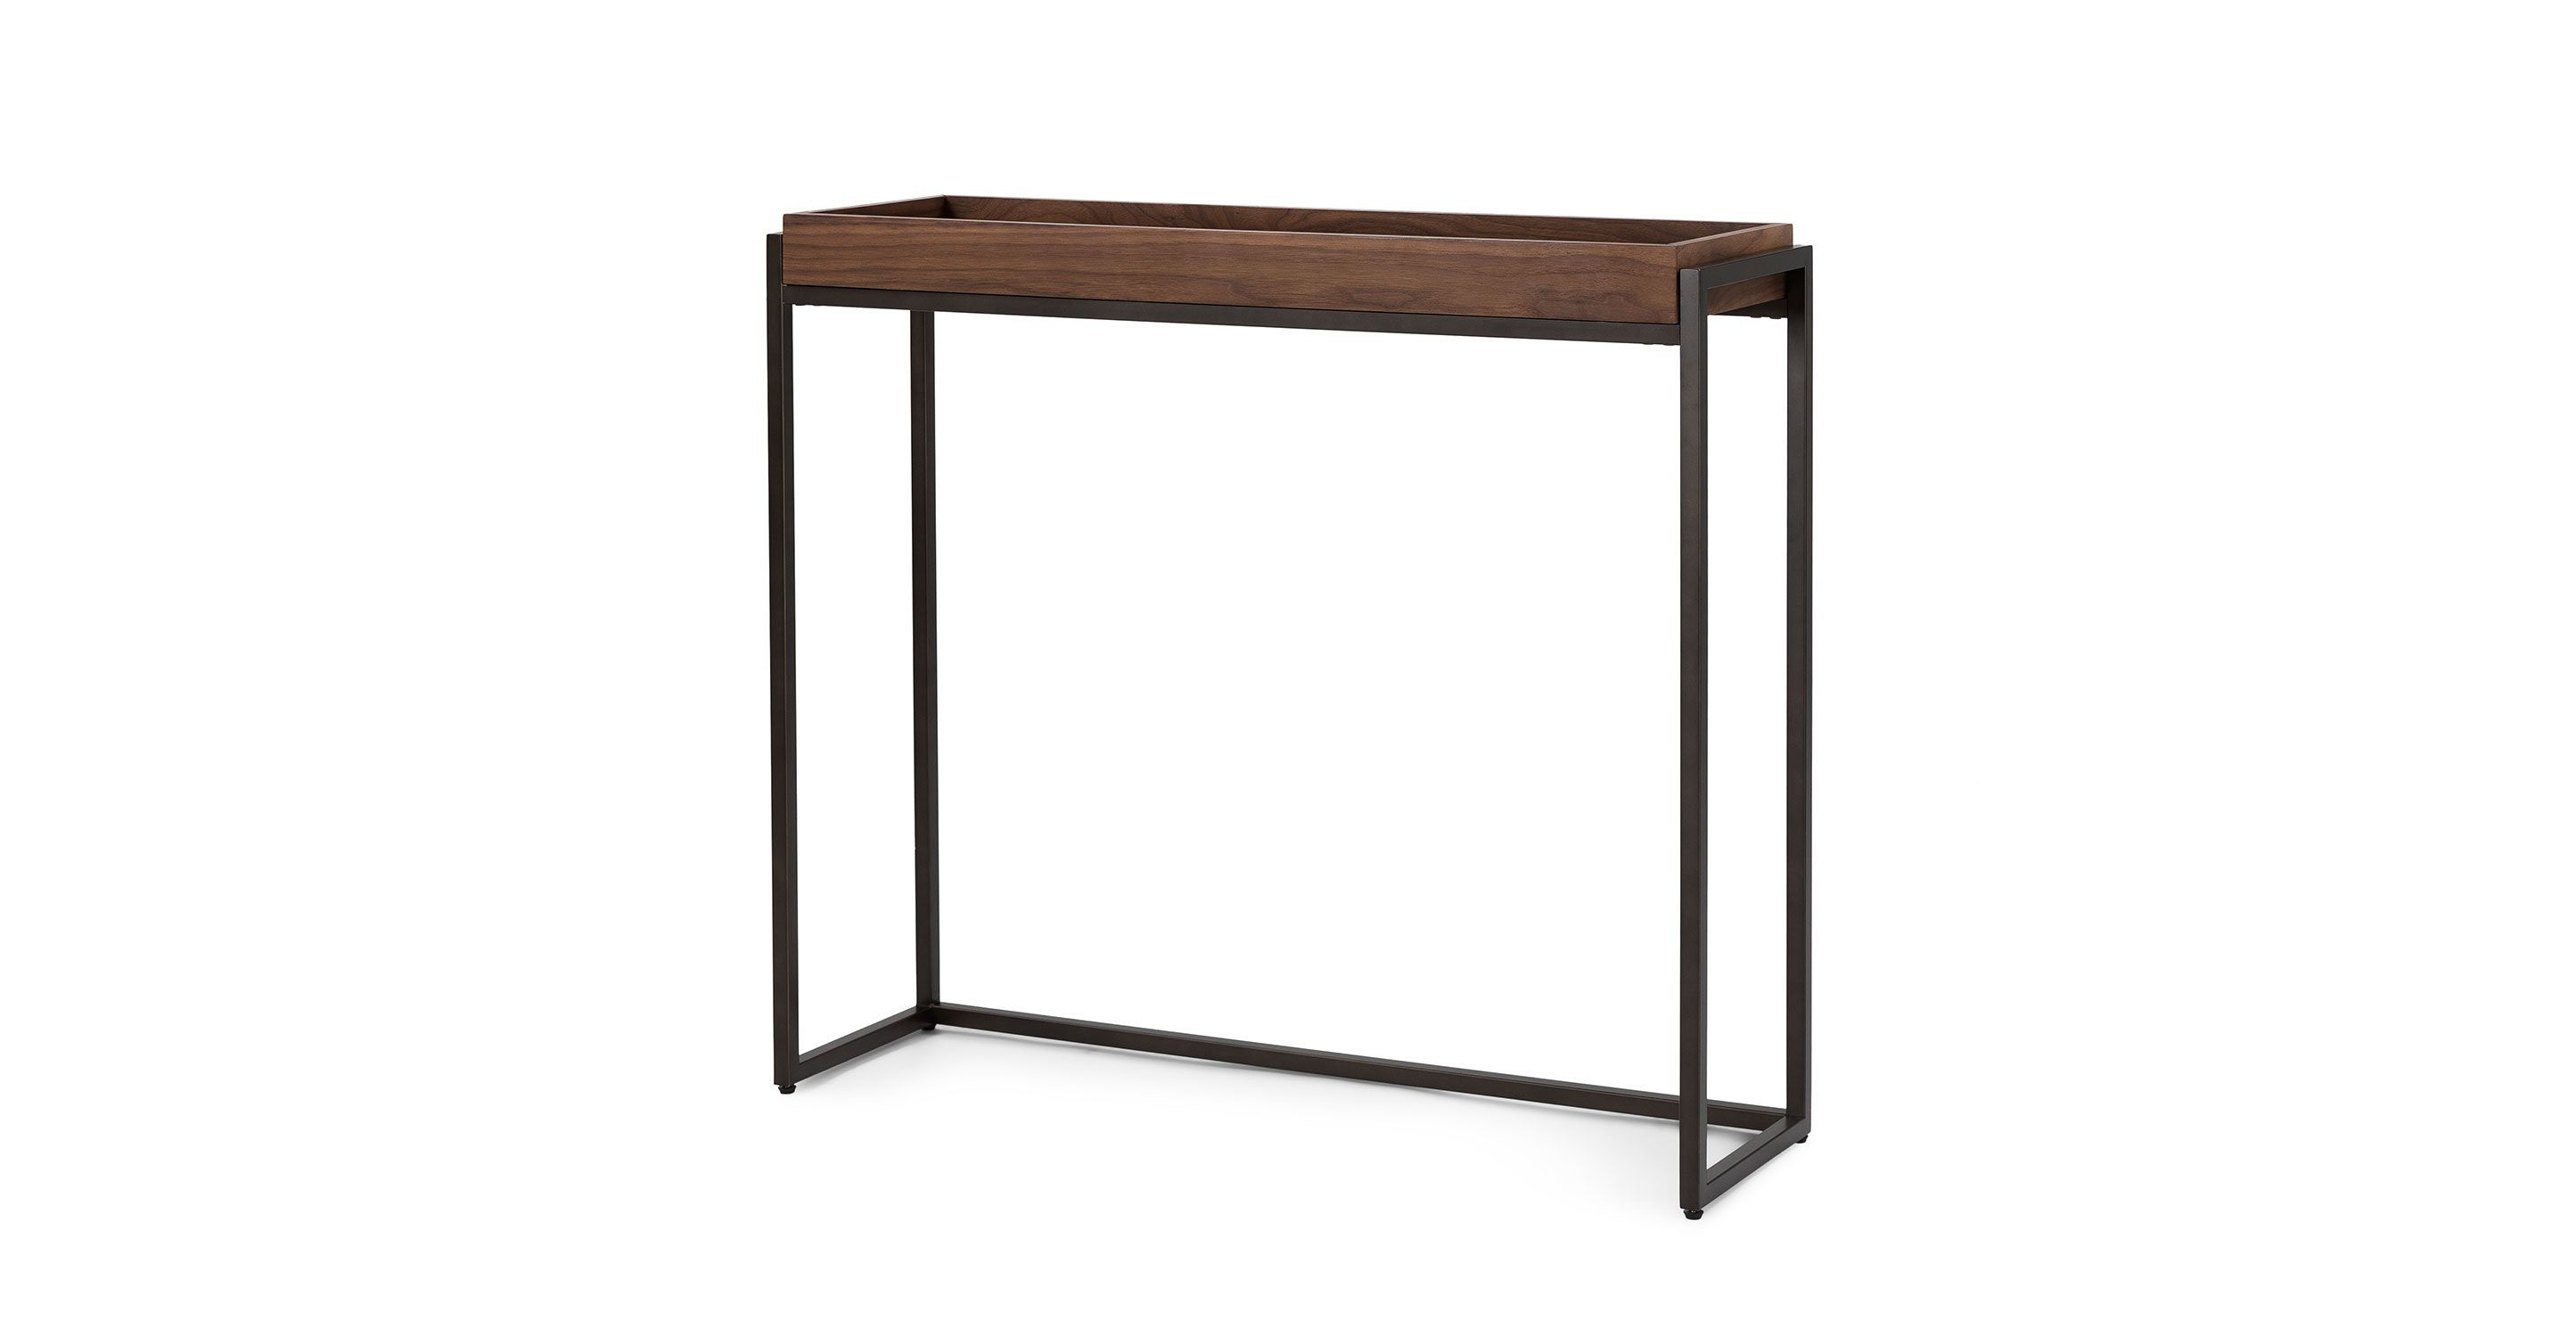 Oscuro Walnut Console Intended For Parsons Clear Glass Top & Brass Base 48x16 Console Tables (View 13 of 30)